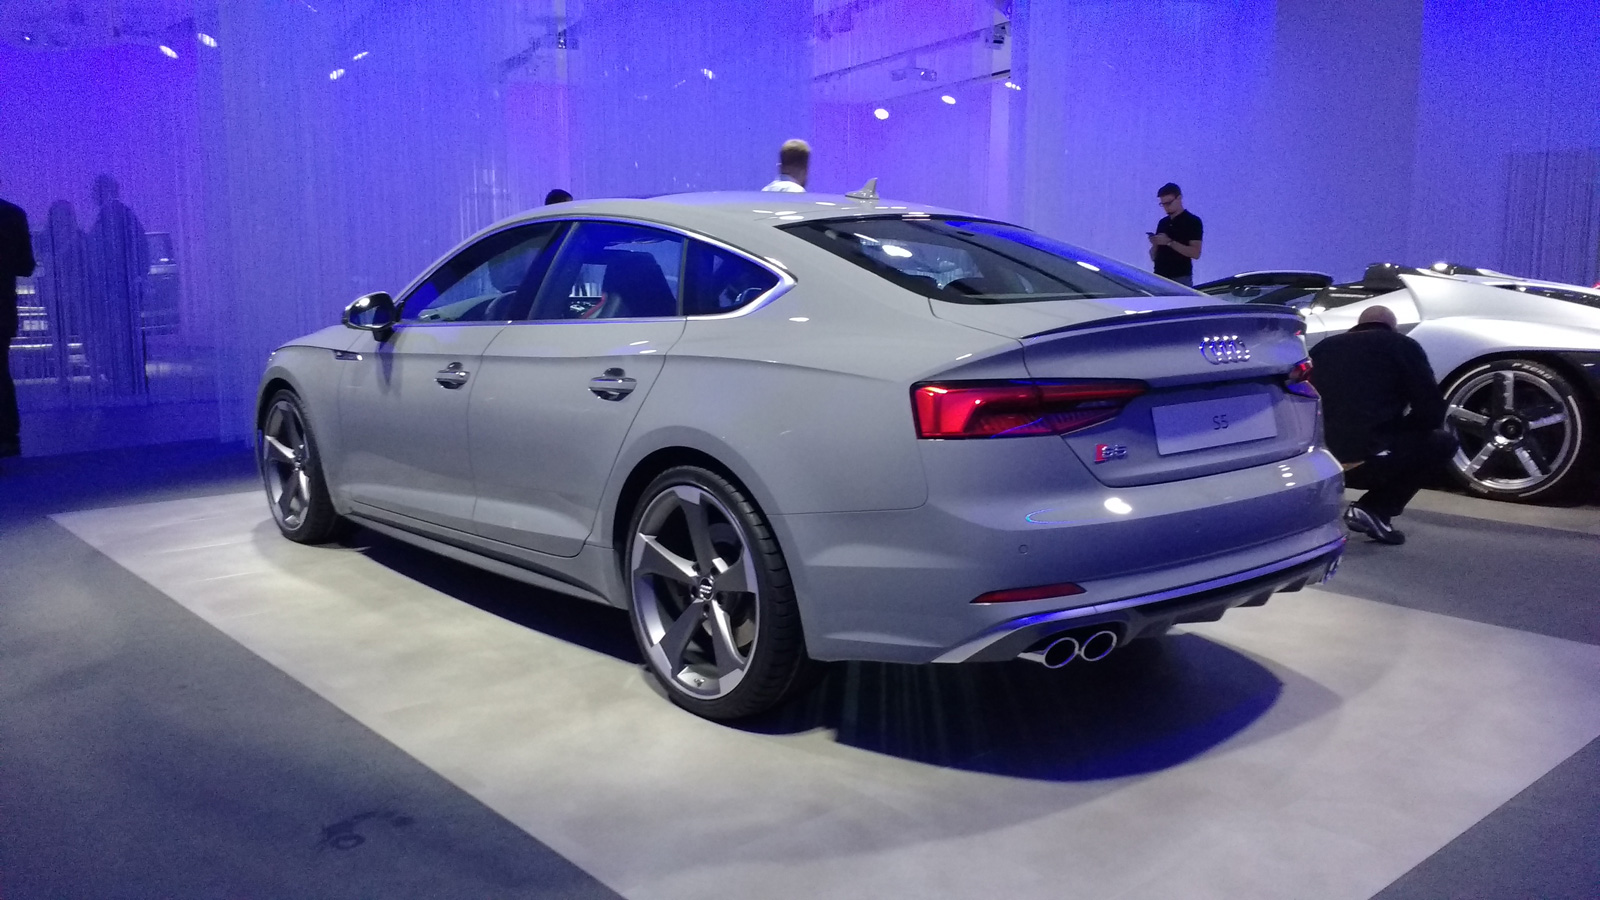 2018 Audi S5 Sportback Pricing And Acceleration Times